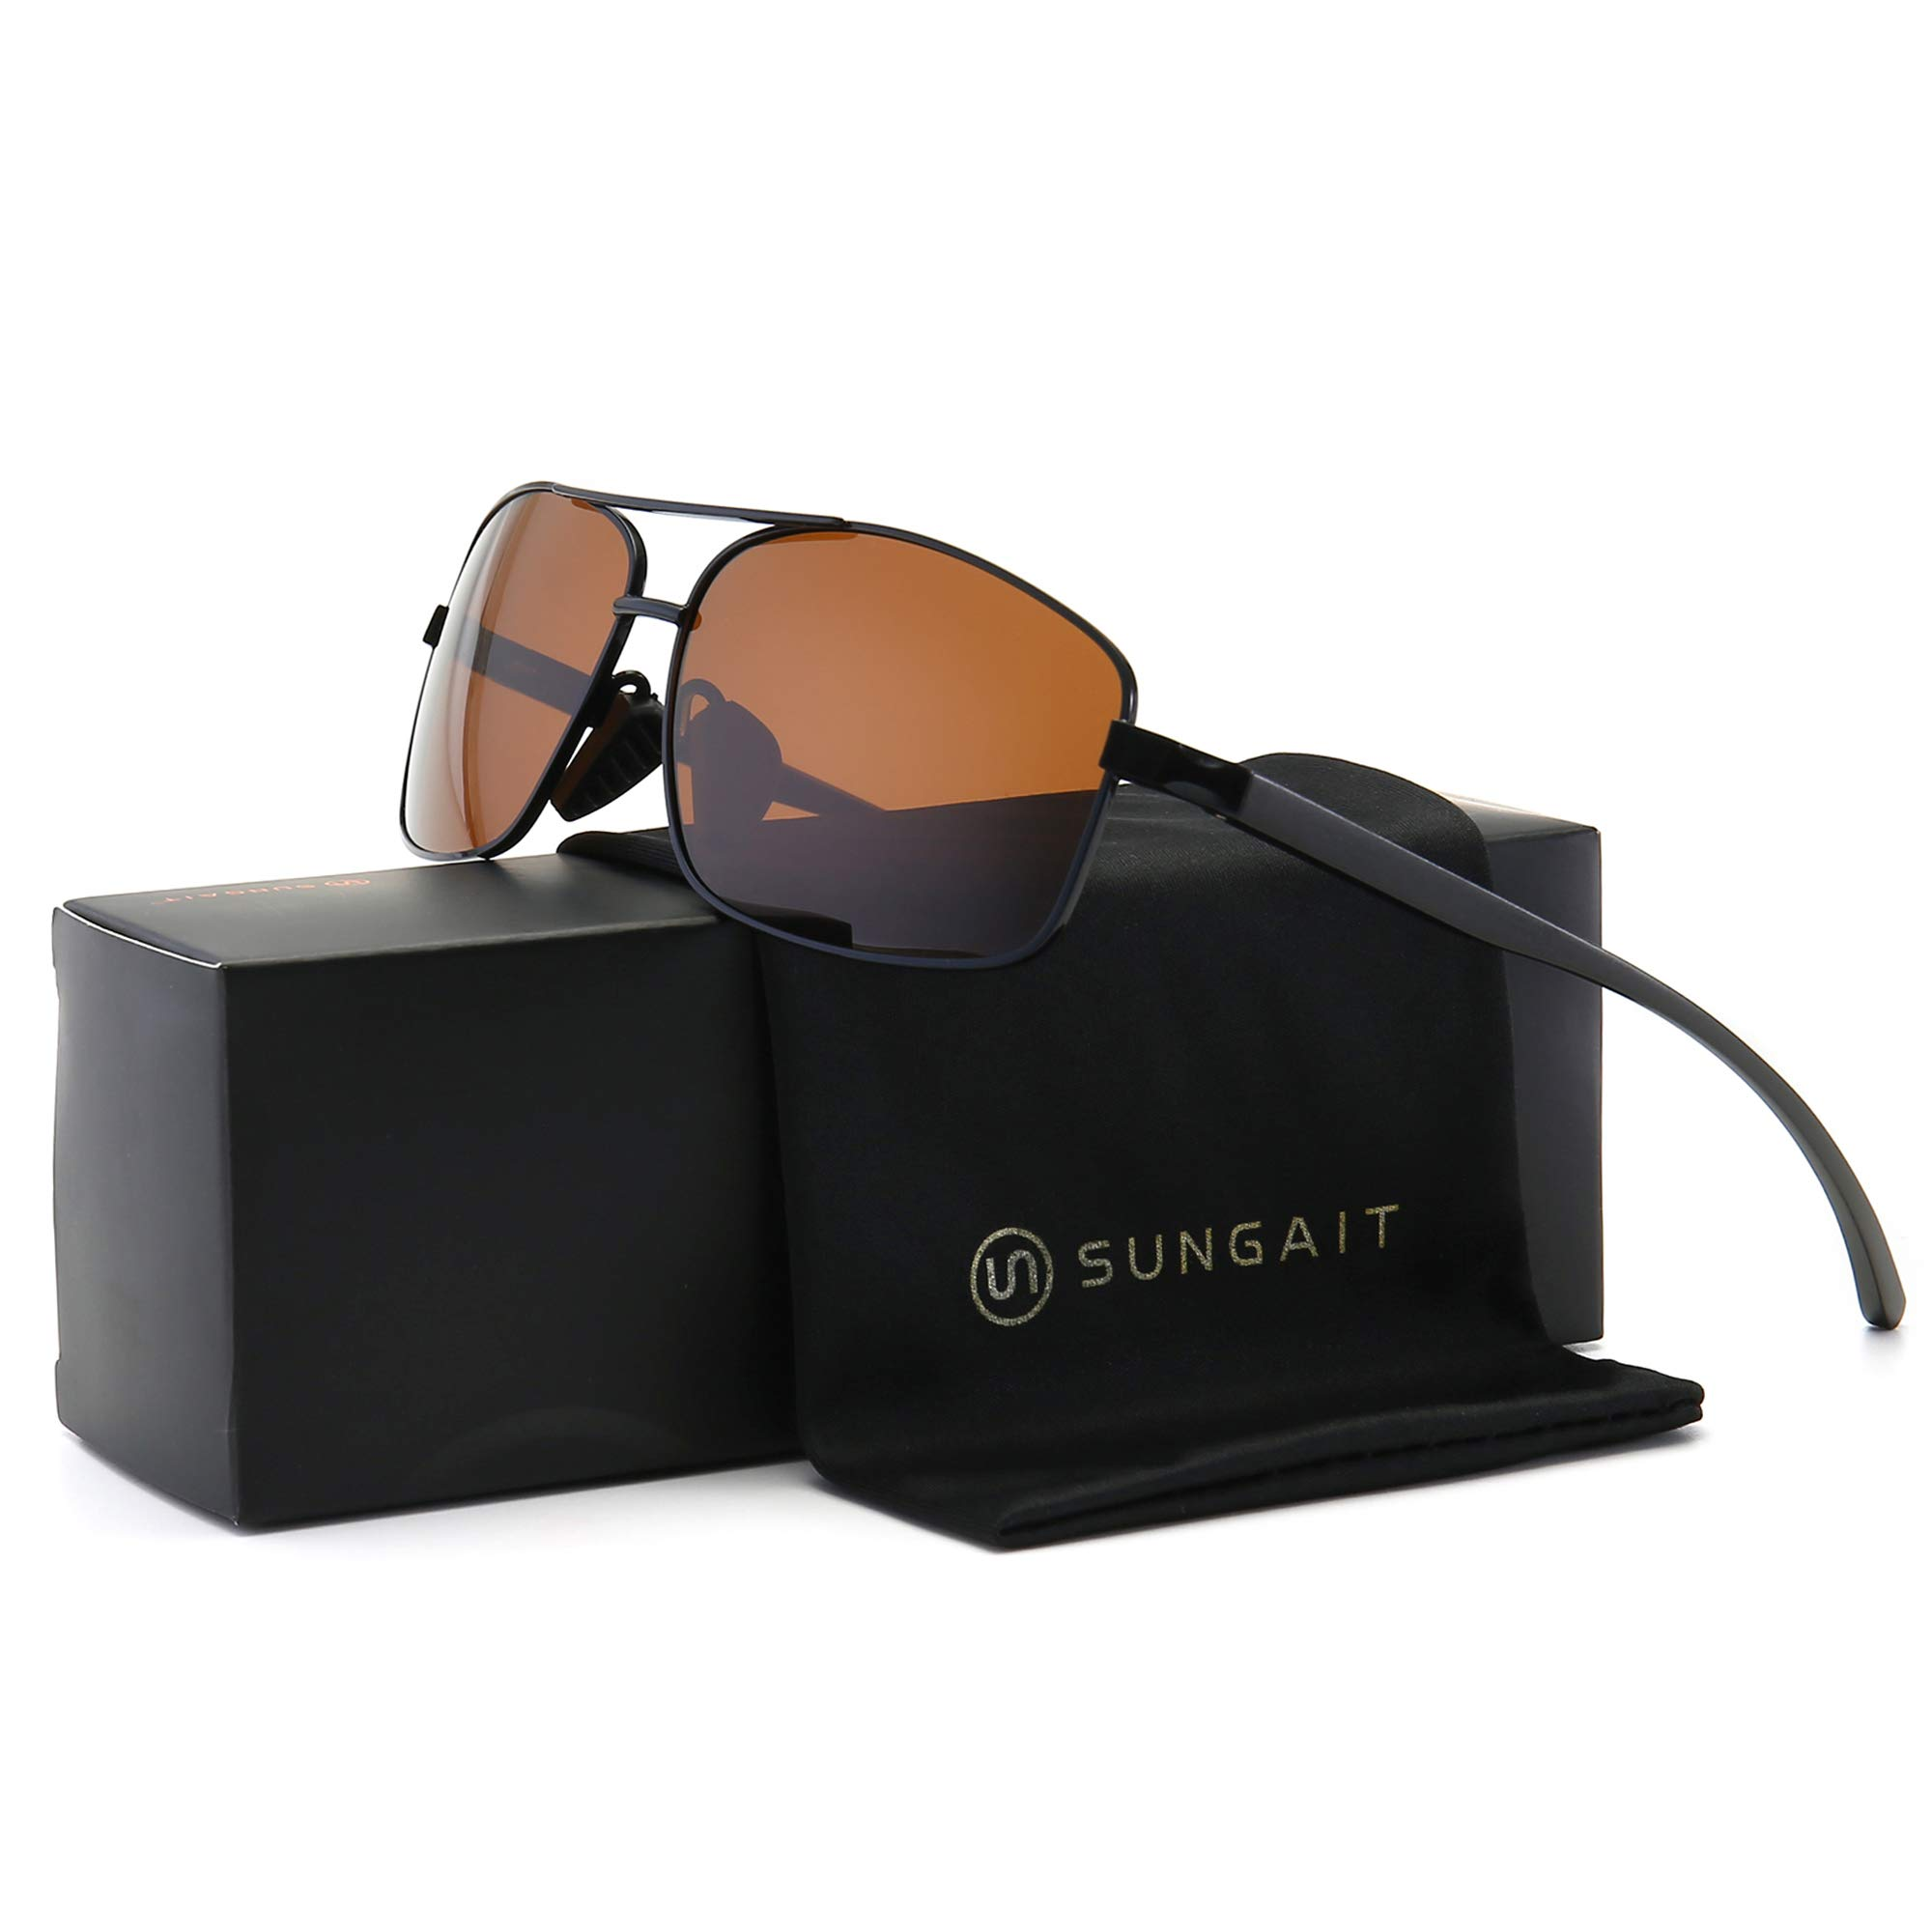 SUNGAIT Ultra Lightweight Rectangular Polarized Sunglasses UV400 Protection (Black Frame Brown Lens, 62) Metal Frame 2458 HEKC by SUNGAIT